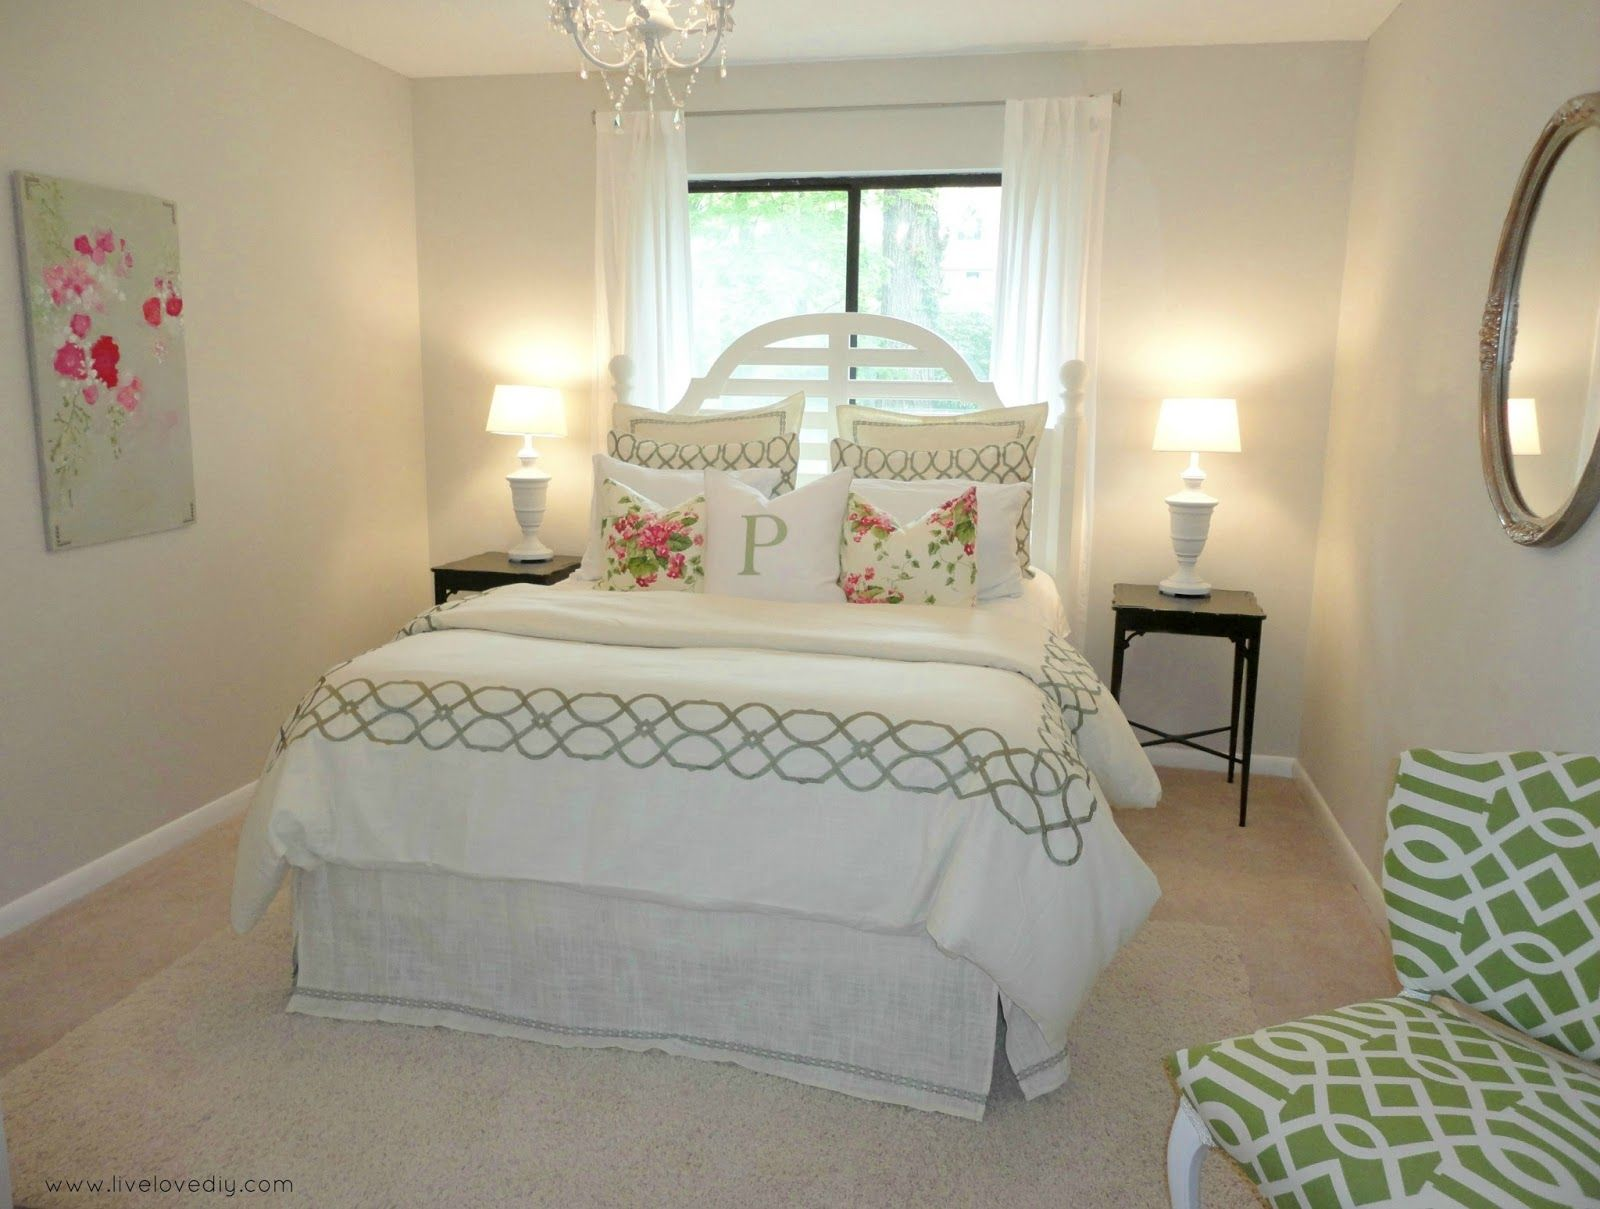 Bedroom Design Ideas On A Budget Brilliant Guest Bedroom Ideas  Decorating Bedrooms With Secondhand Finds Inspiration Design